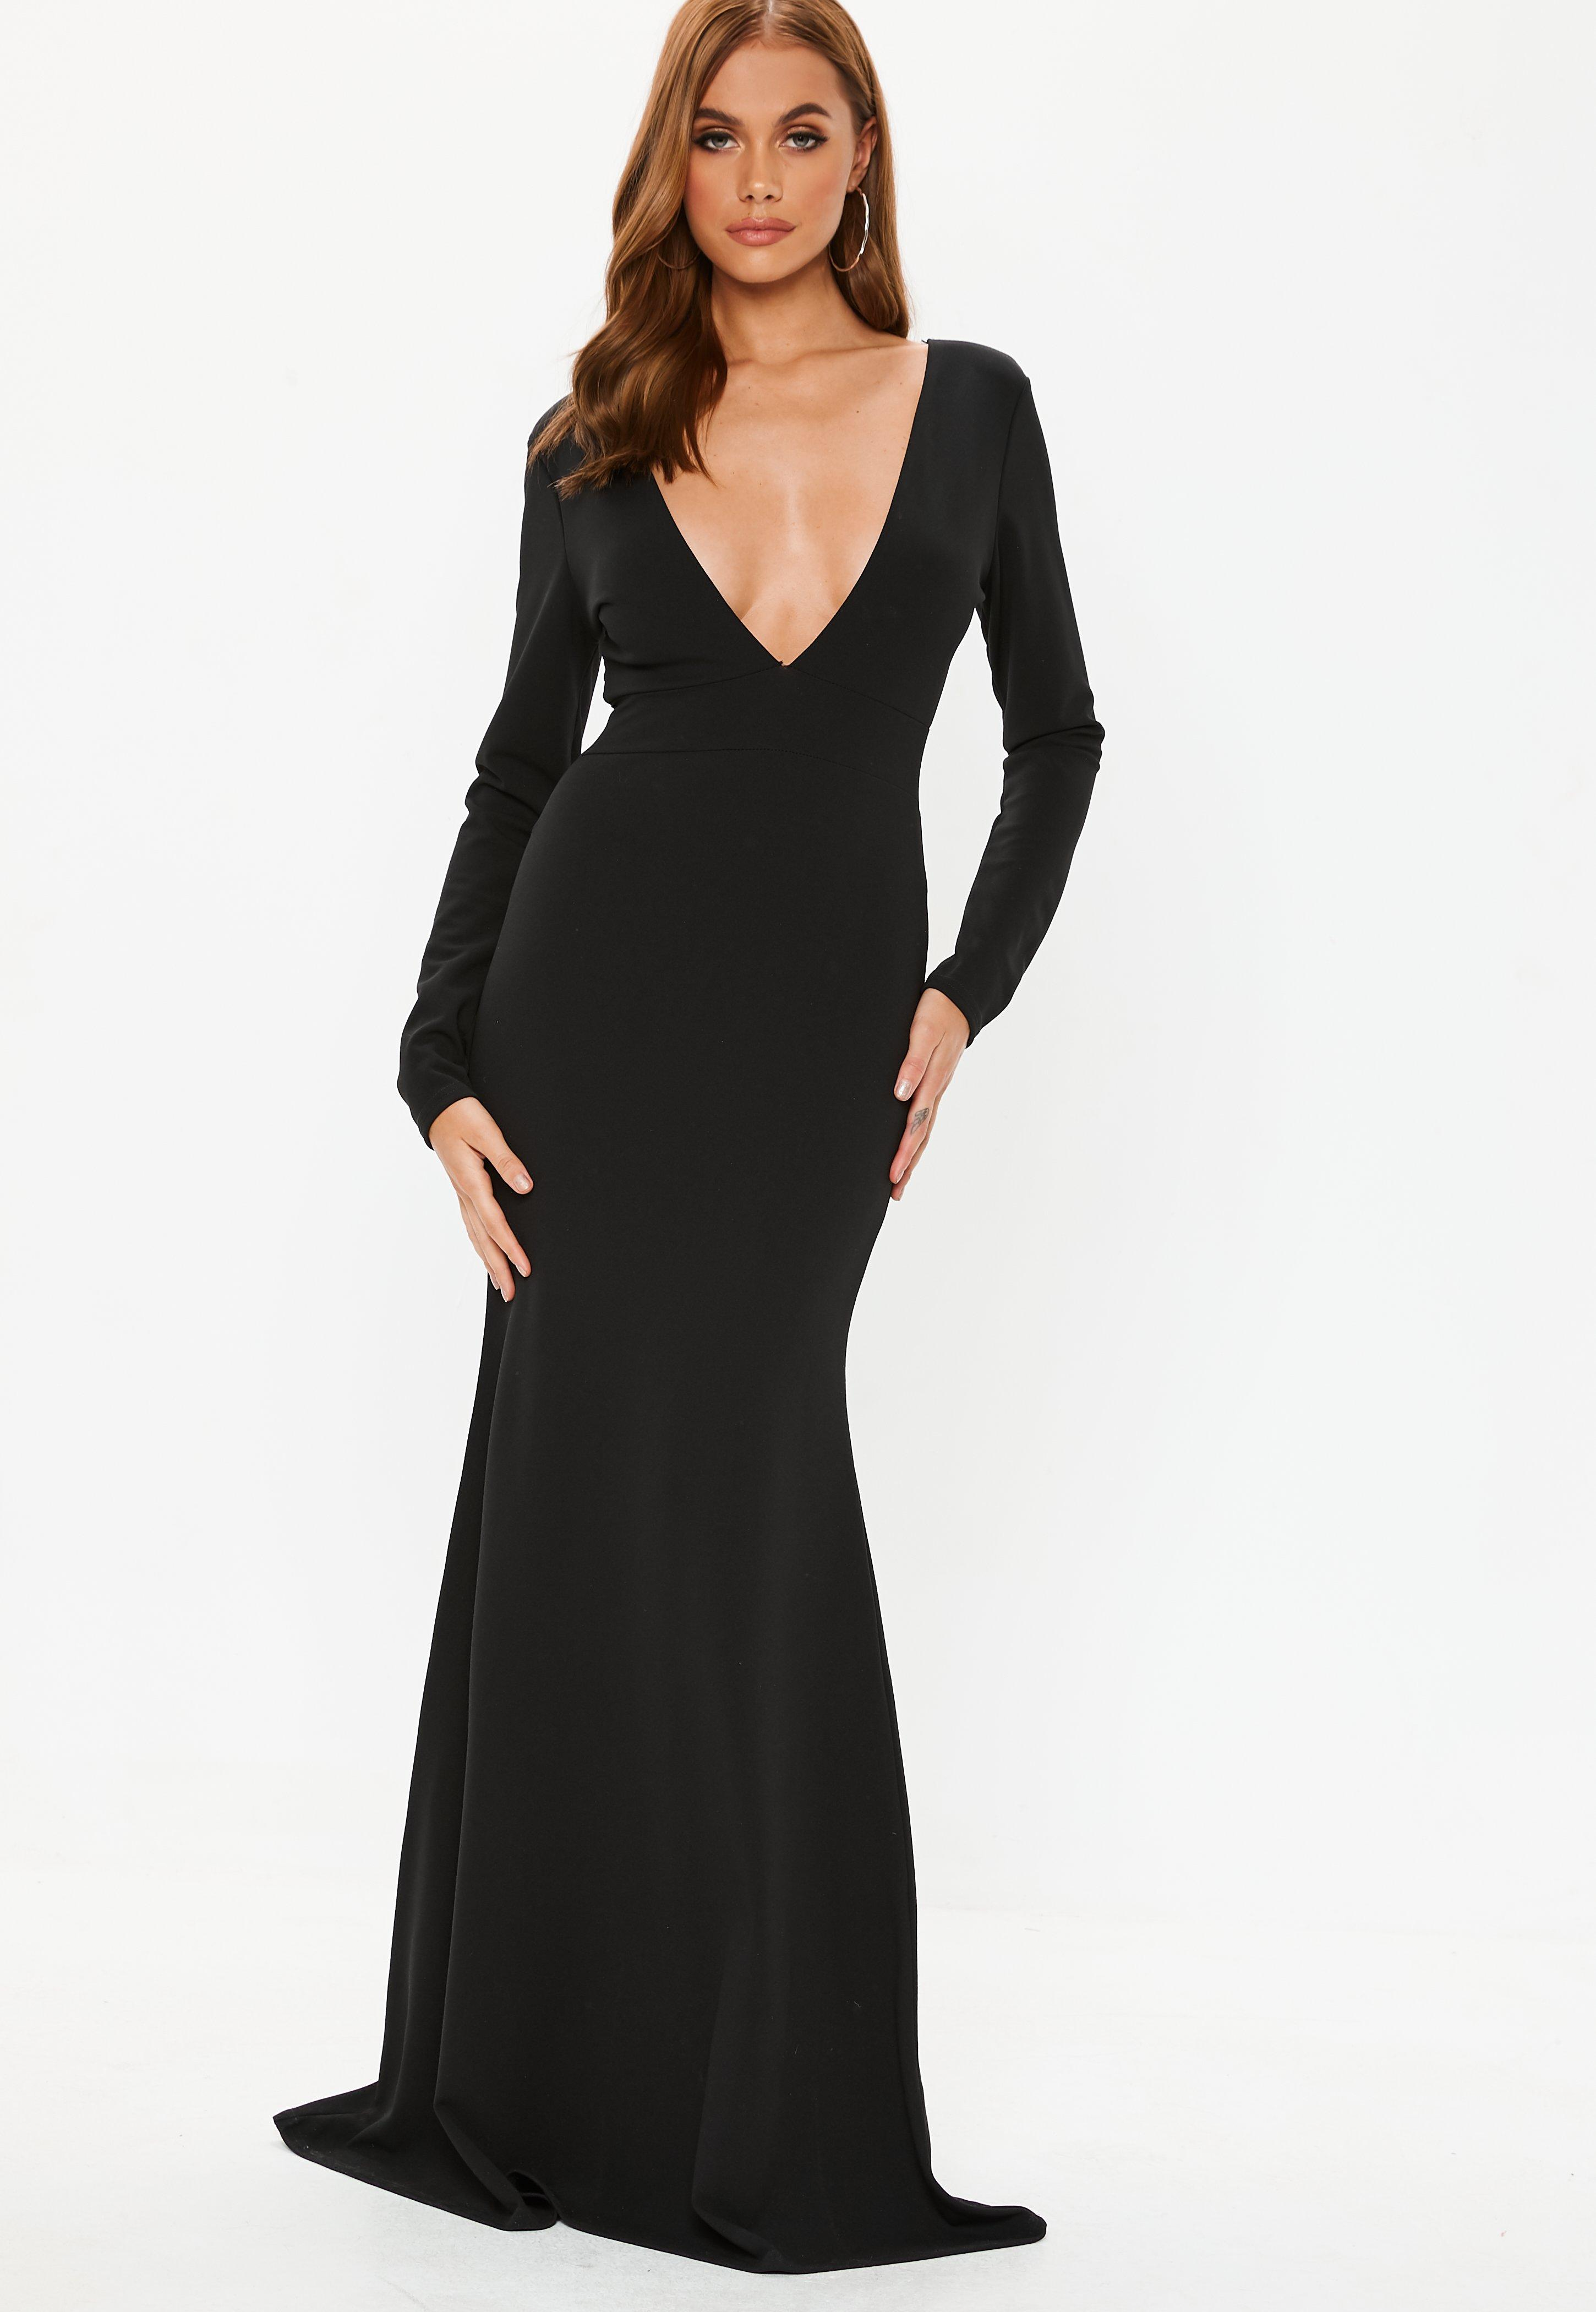 Maxi dresses | Casual & Evening Maxi Dresses UK | Missguided